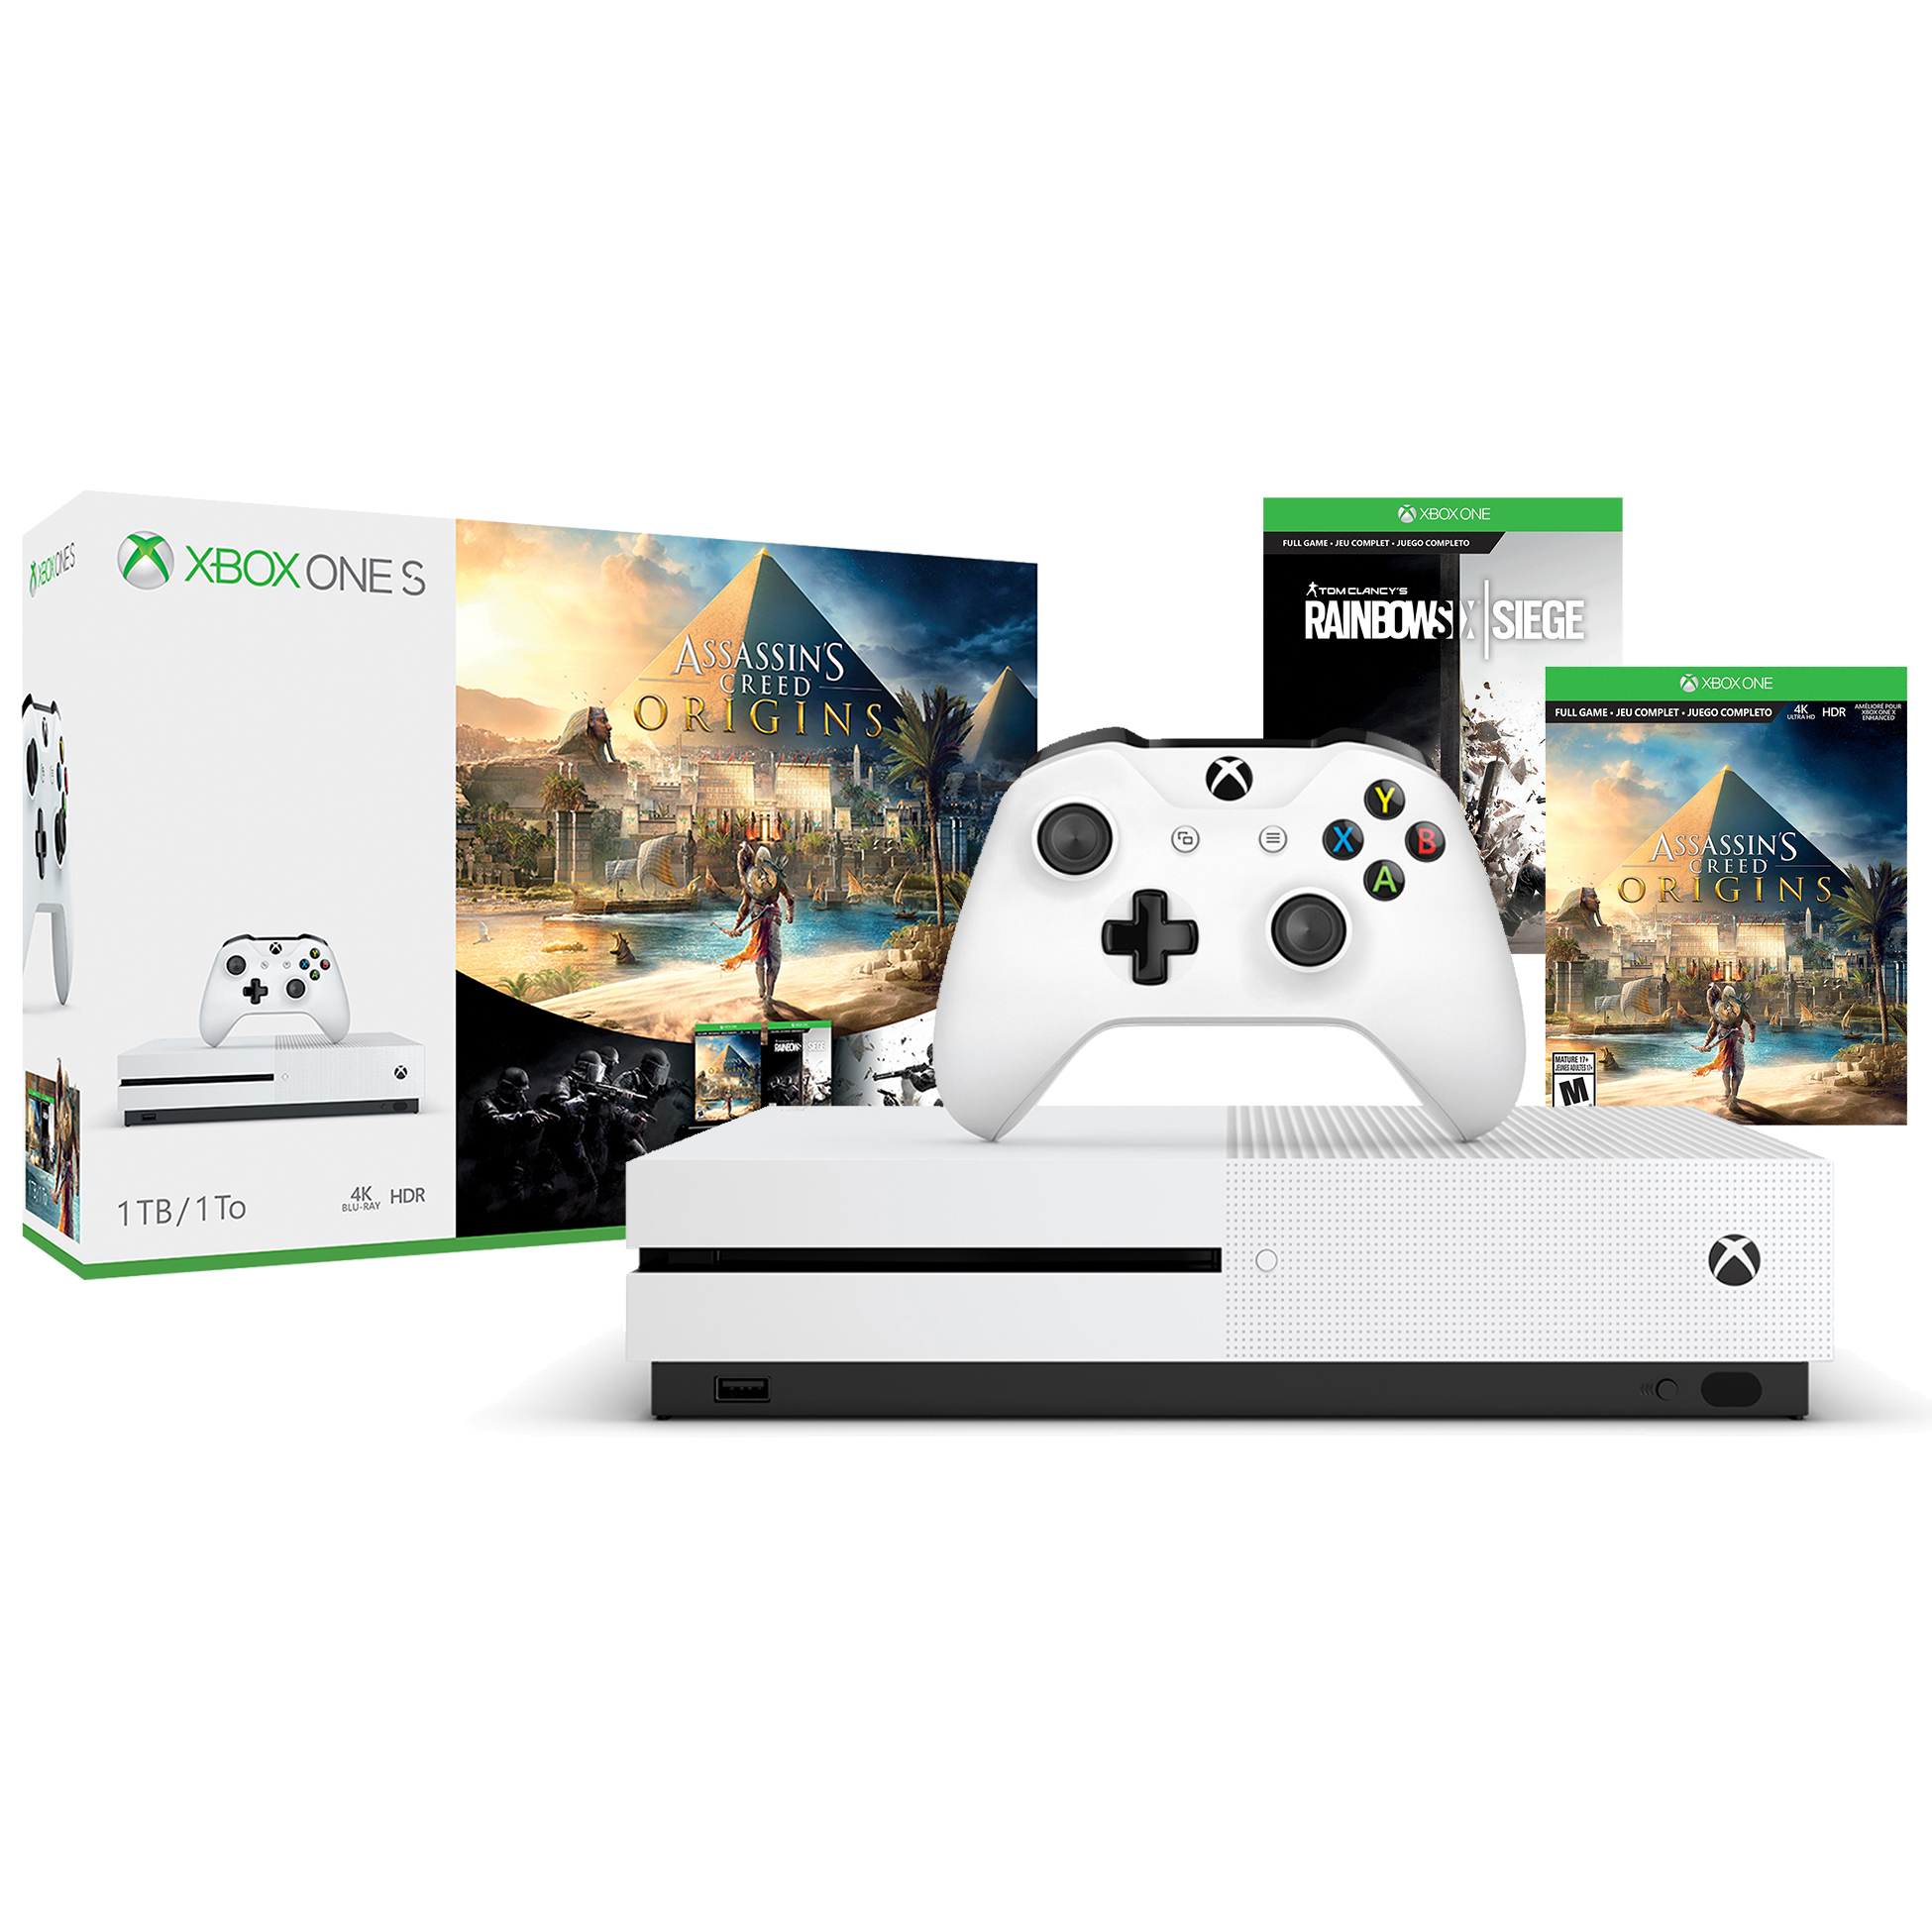 Microsoft Xbox One S 1TB Assassin's Creed® Origins Bonus Bundle, White, 234-00226